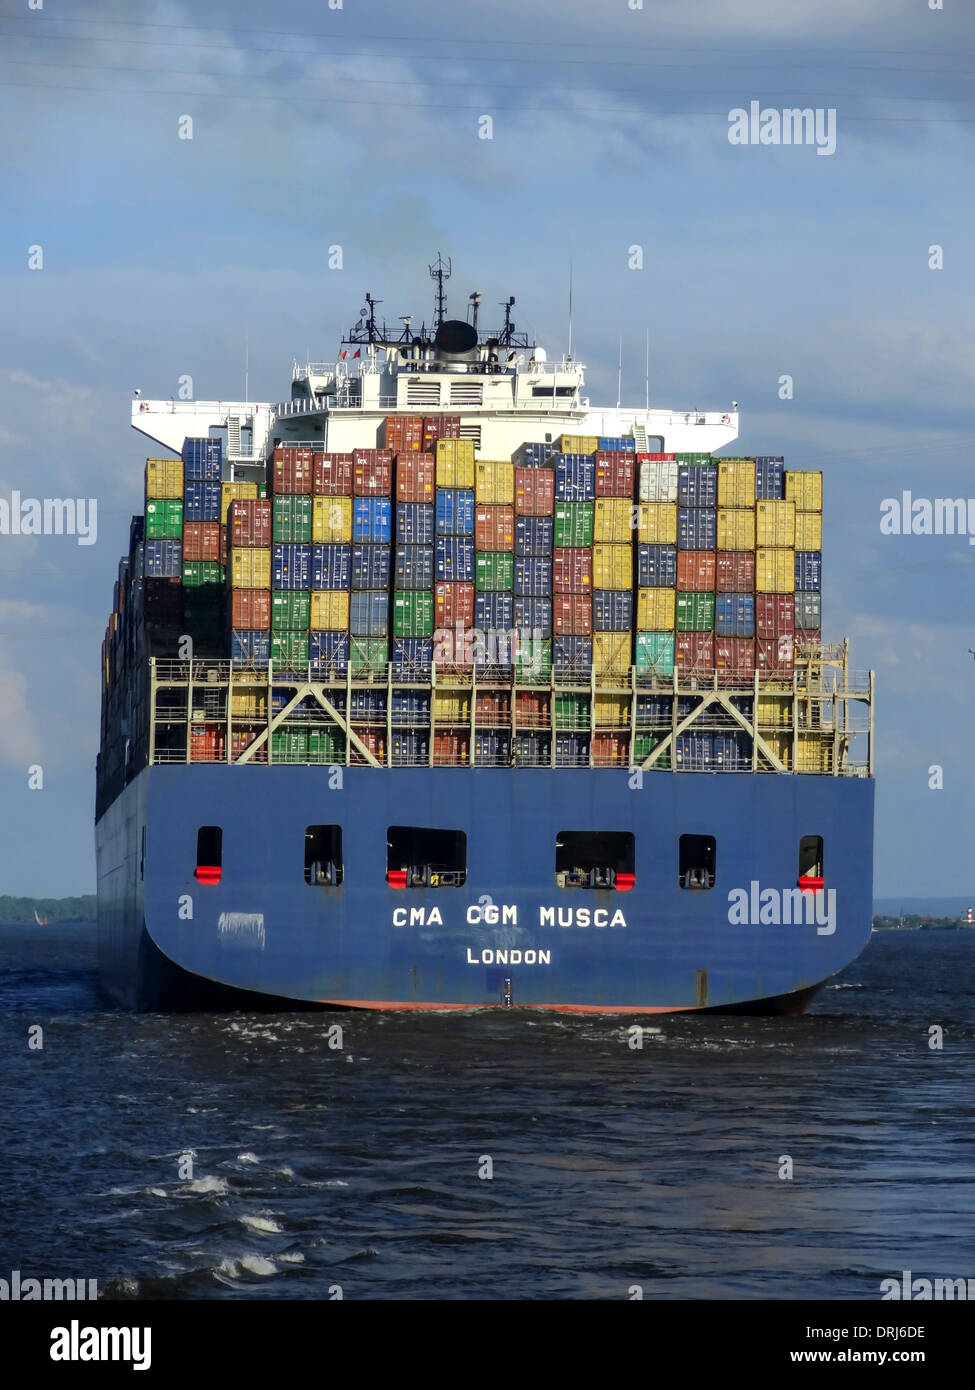 Containerriese CMA CGM Musca auf der Elbe / containership CMA CGM Musca - Stock Image